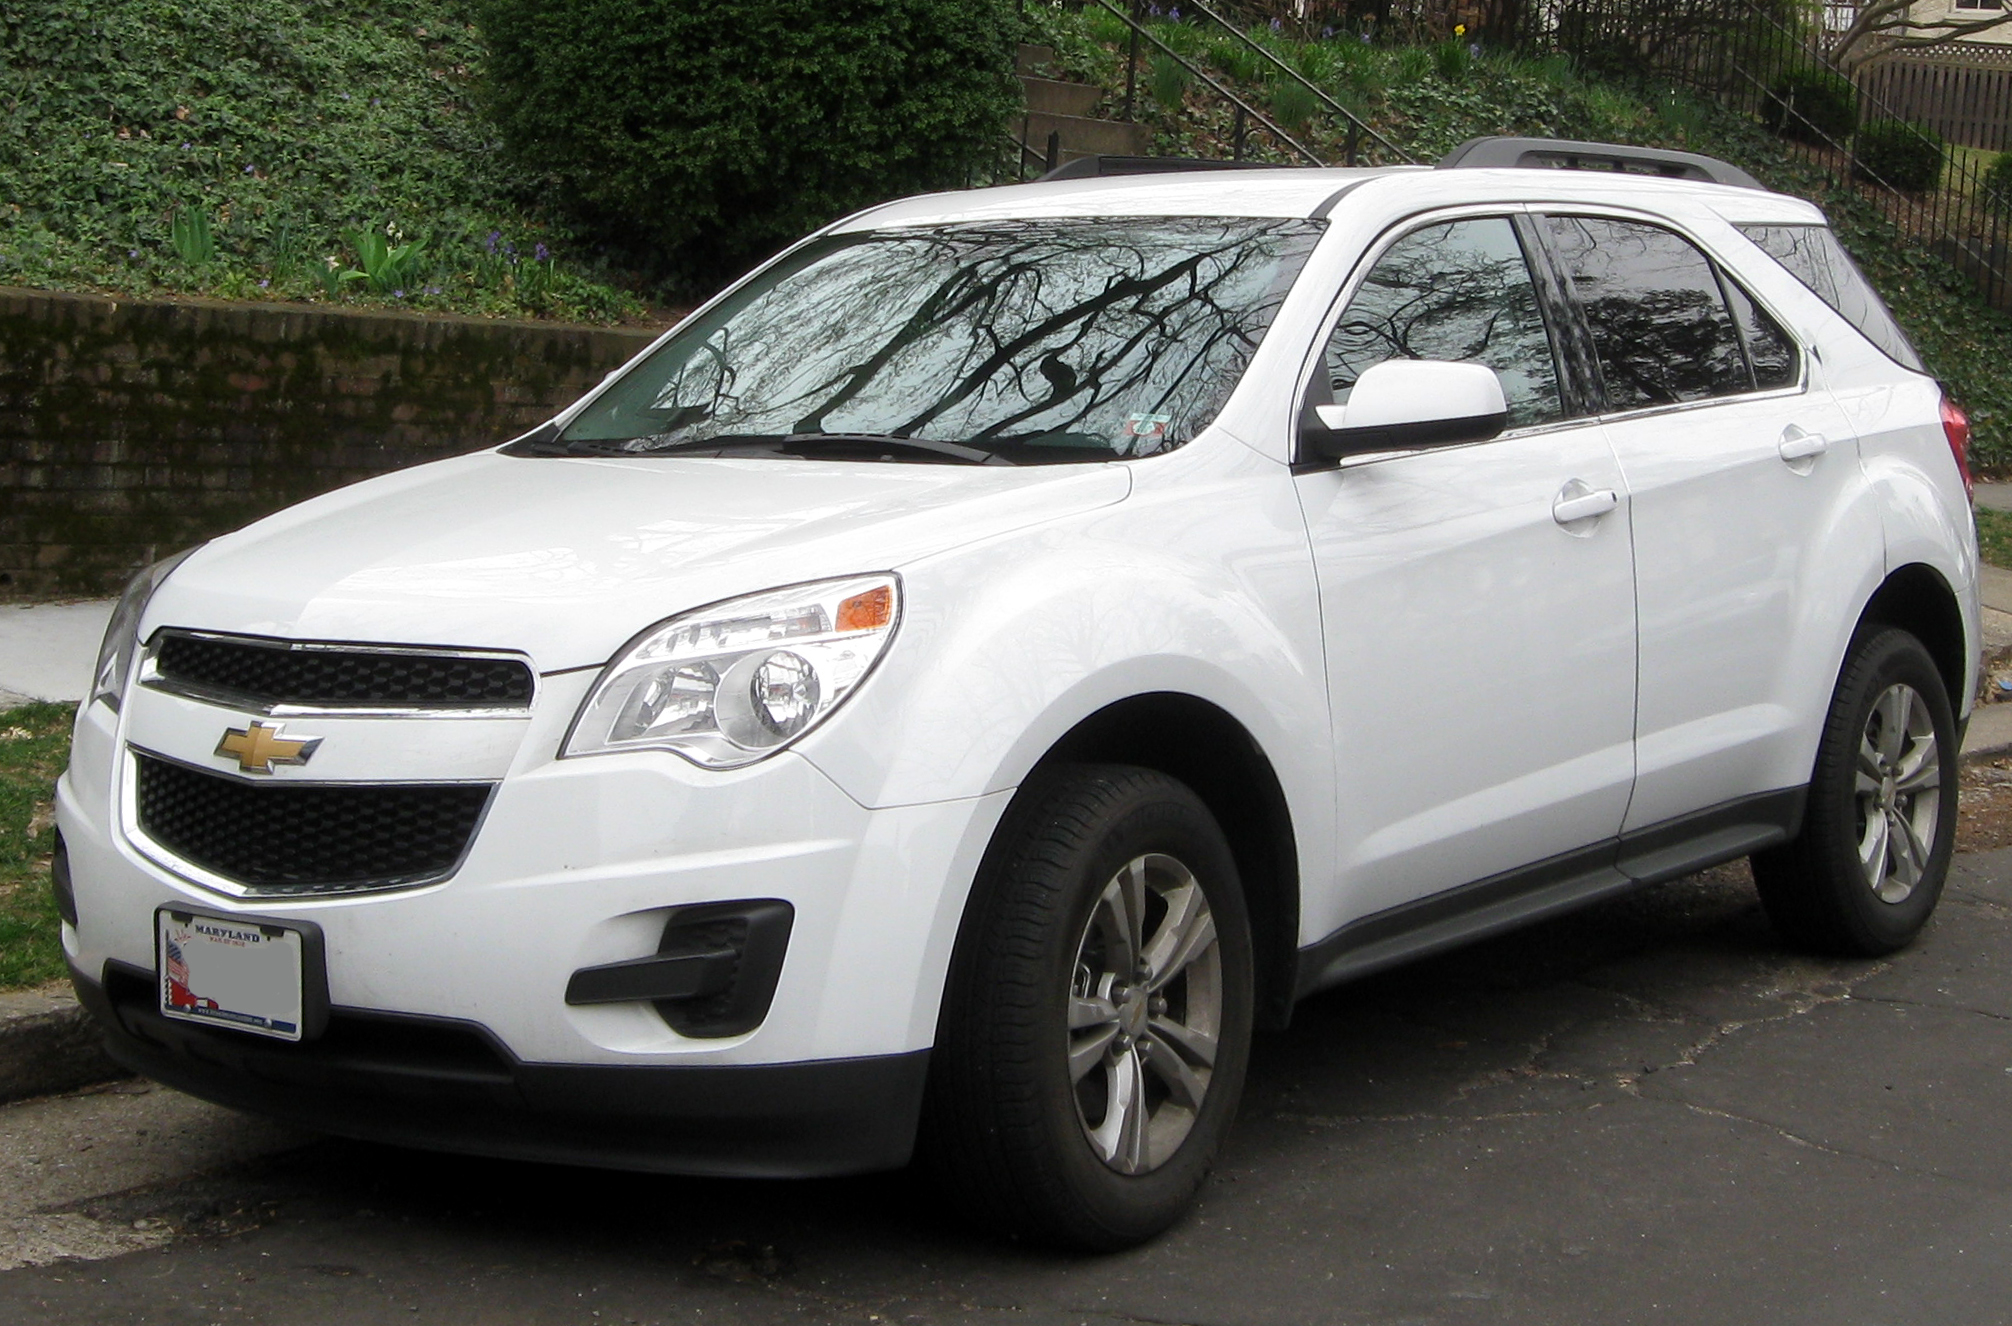 chevrolet equinox wikiwand. Black Bedroom Furniture Sets. Home Design Ideas